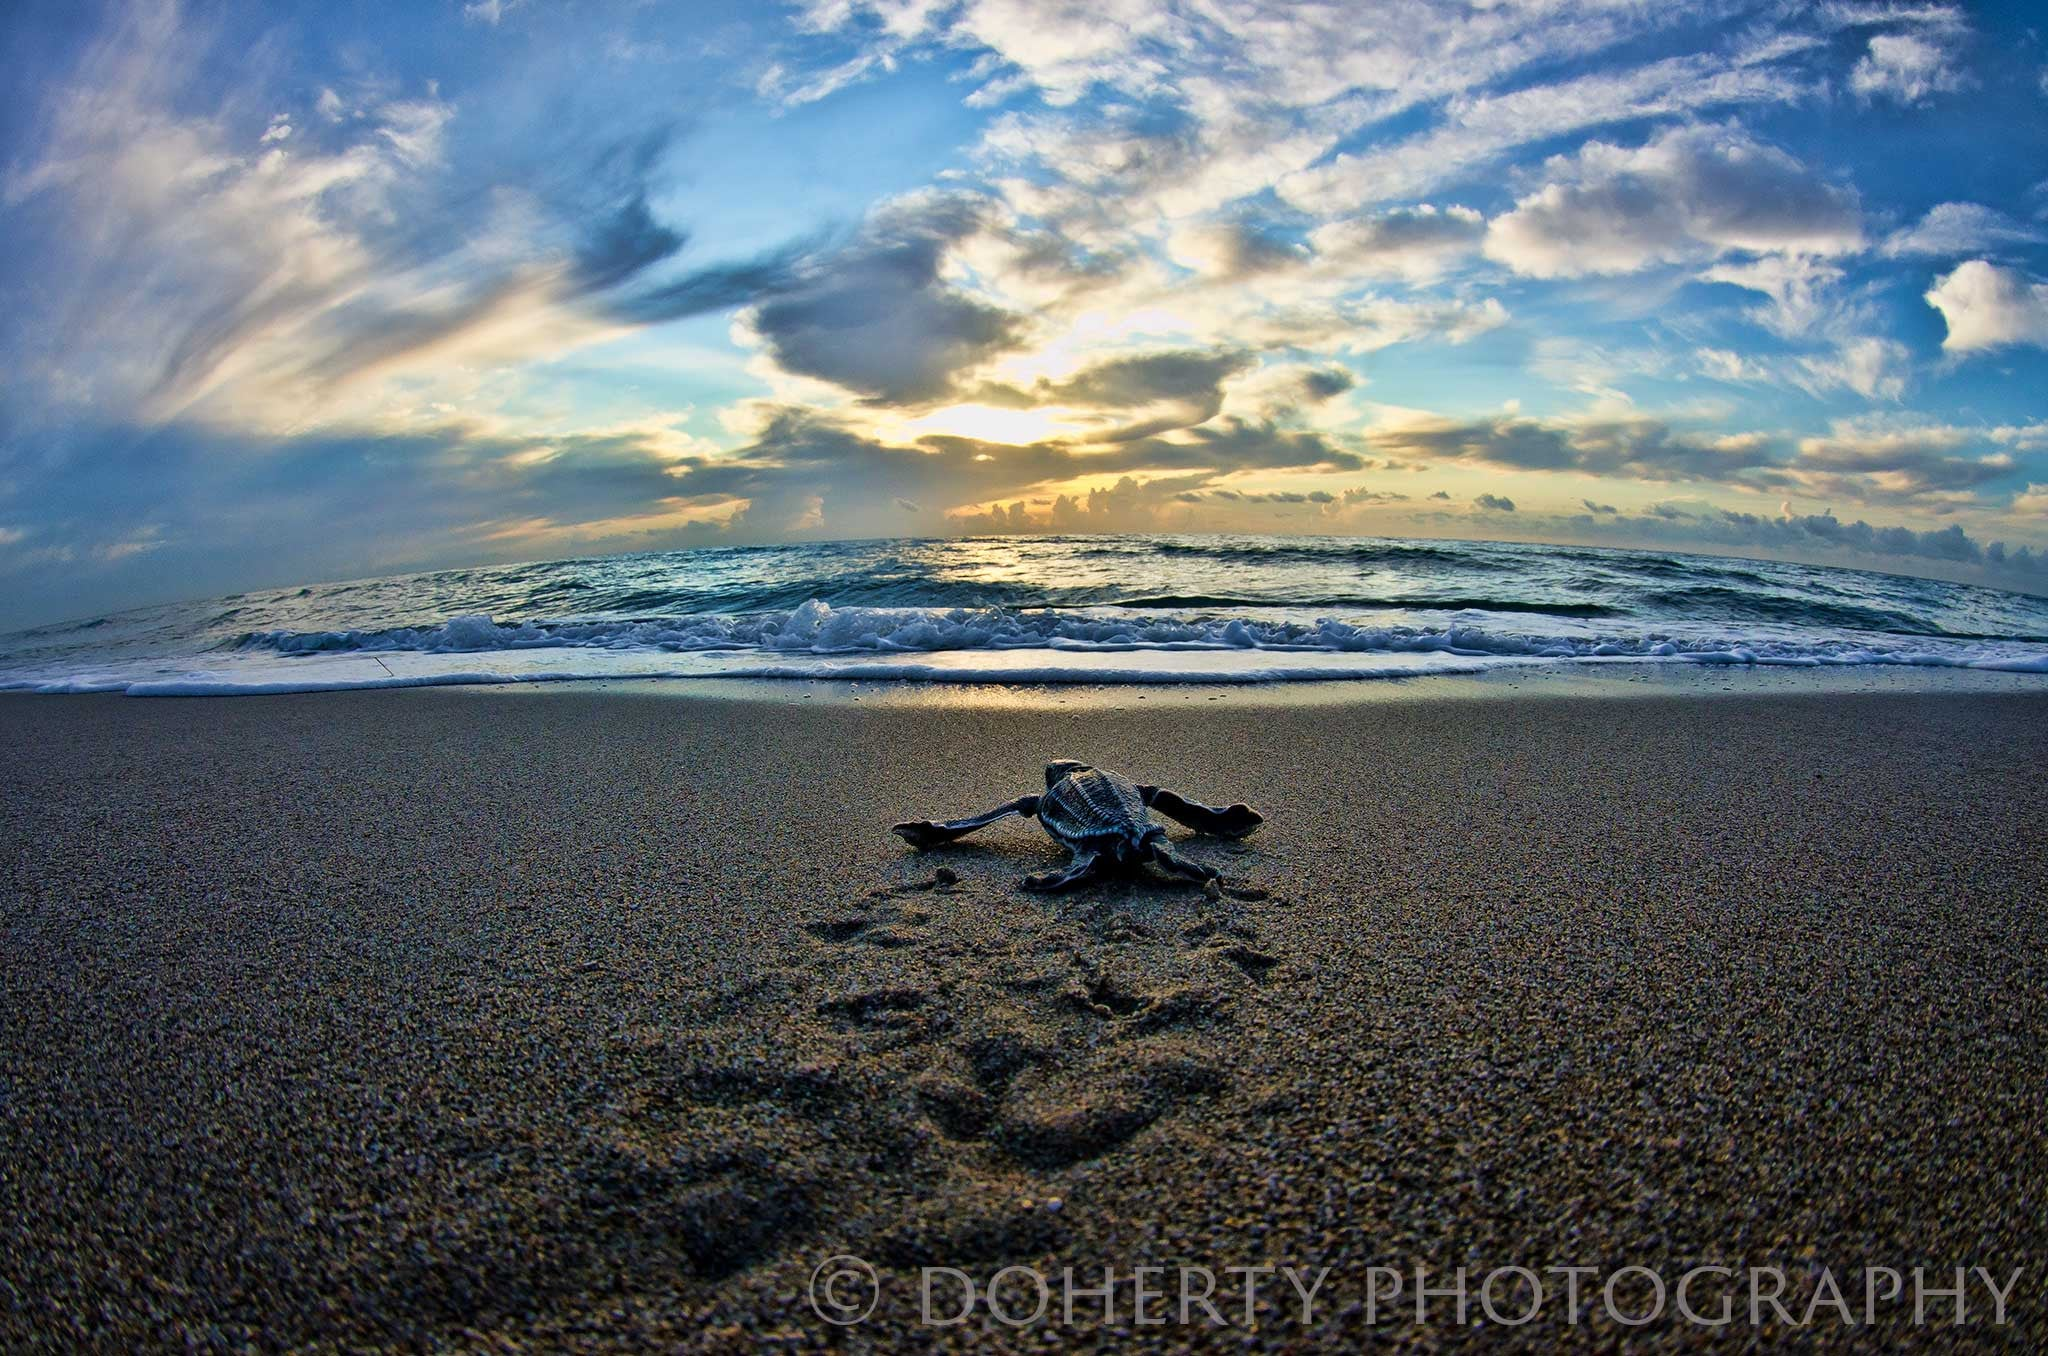 The Long Journey - Doherty Photography